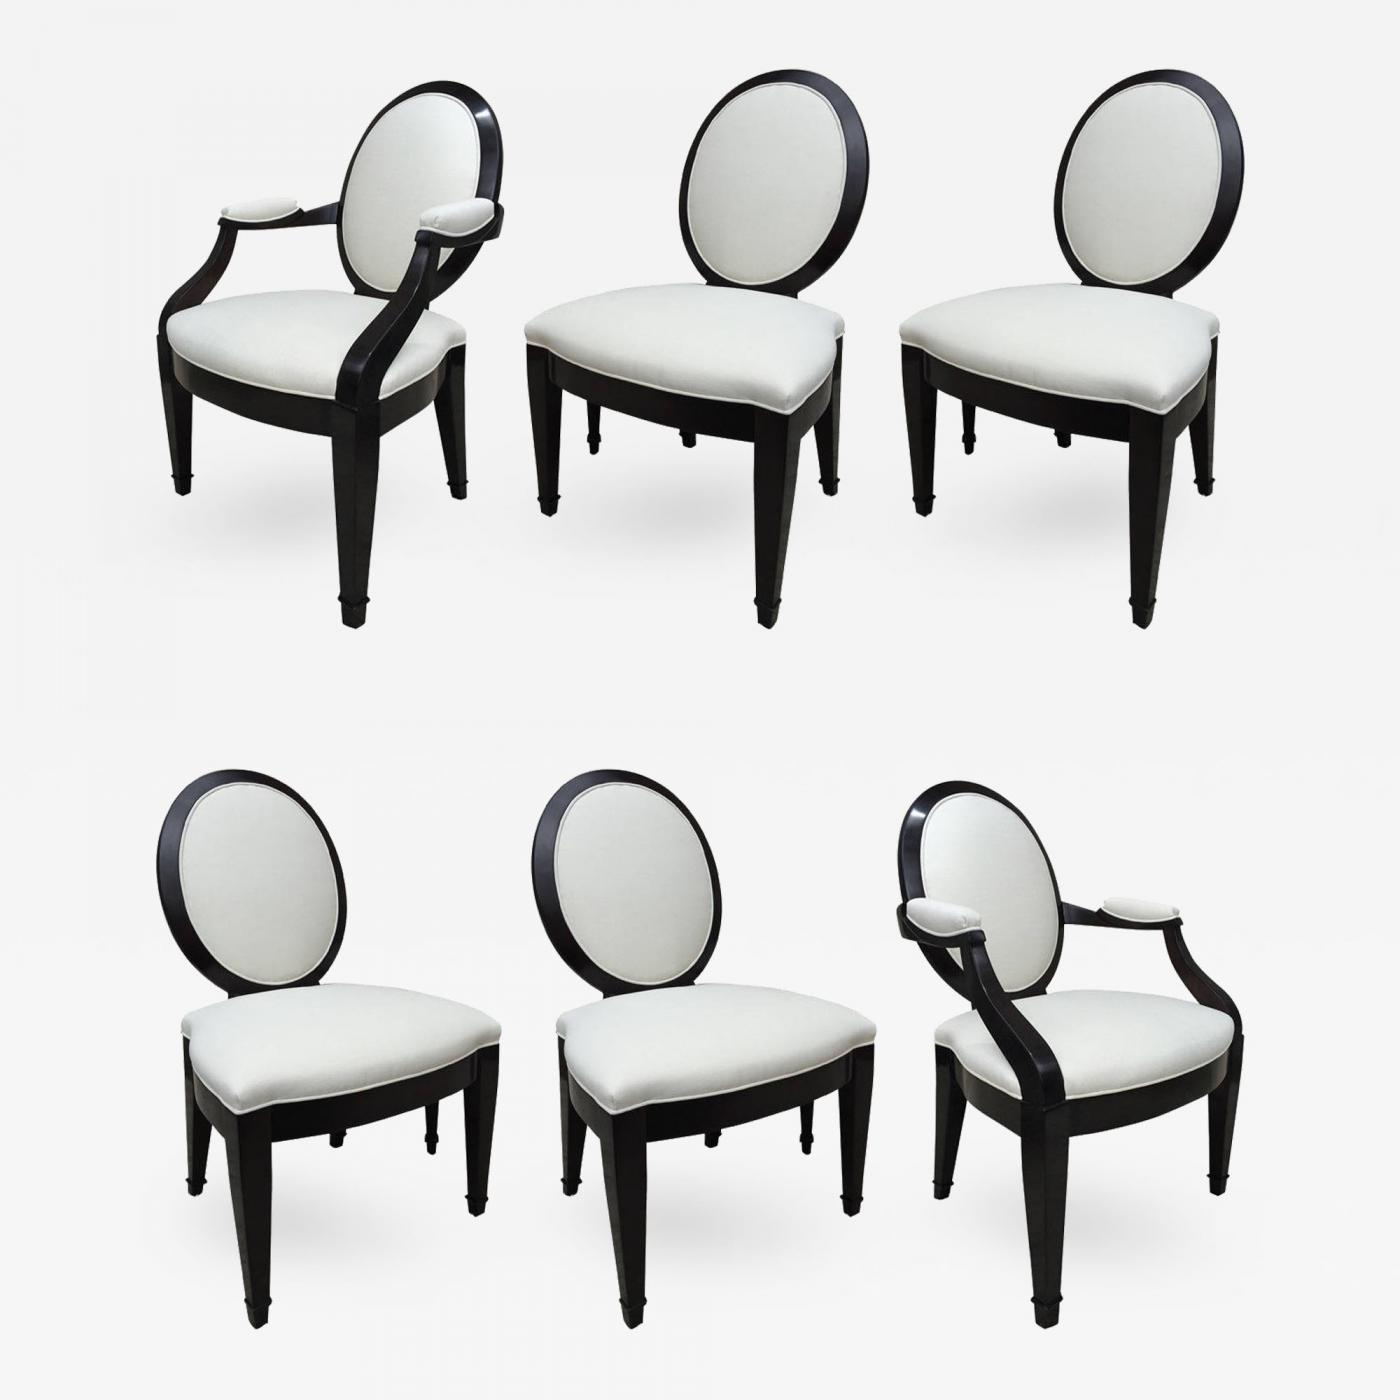 Merveilleux Listings / Furniture / Seating / Armchairs